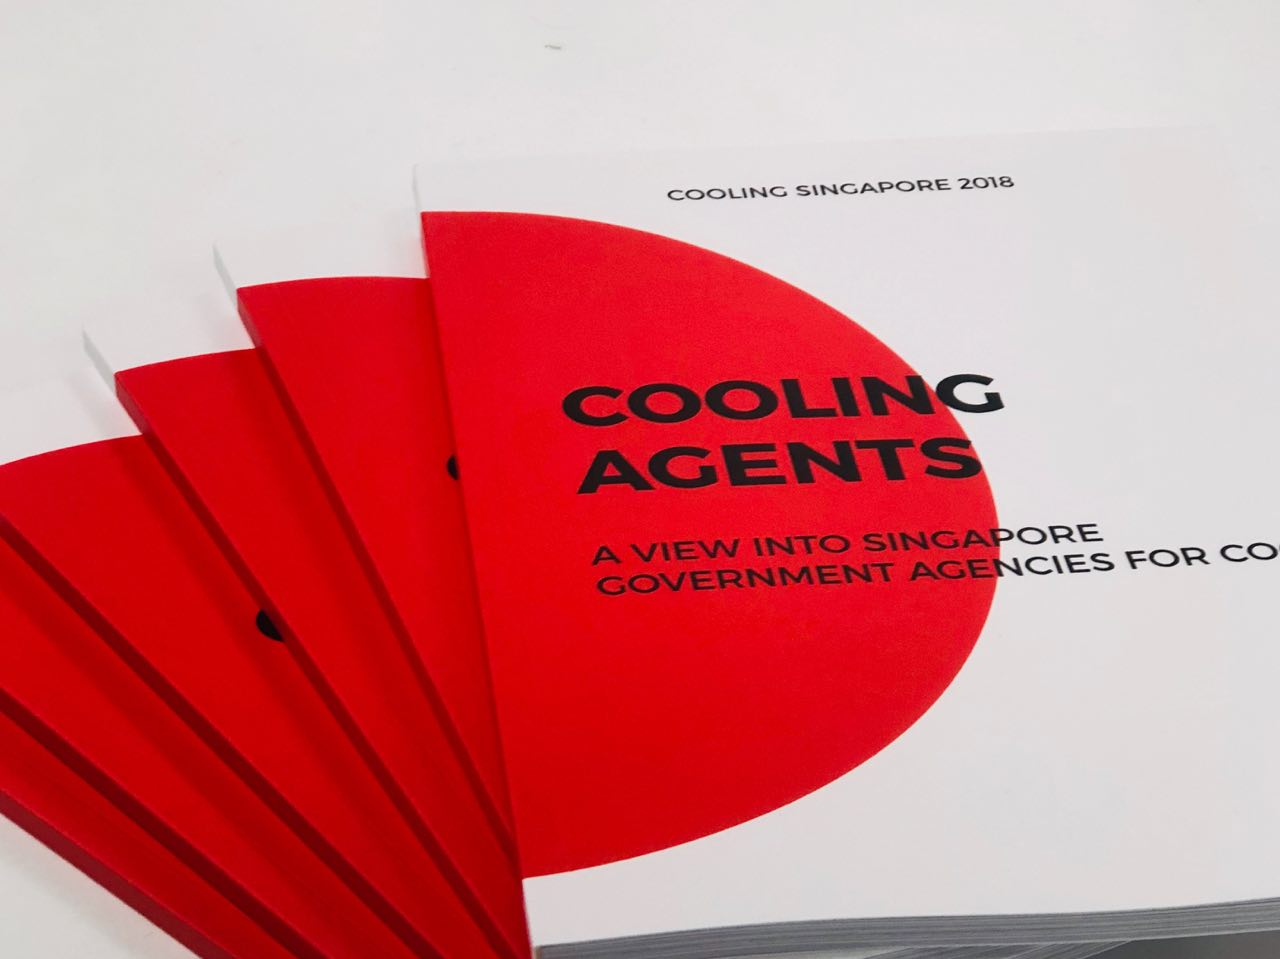 Cooling Agents report